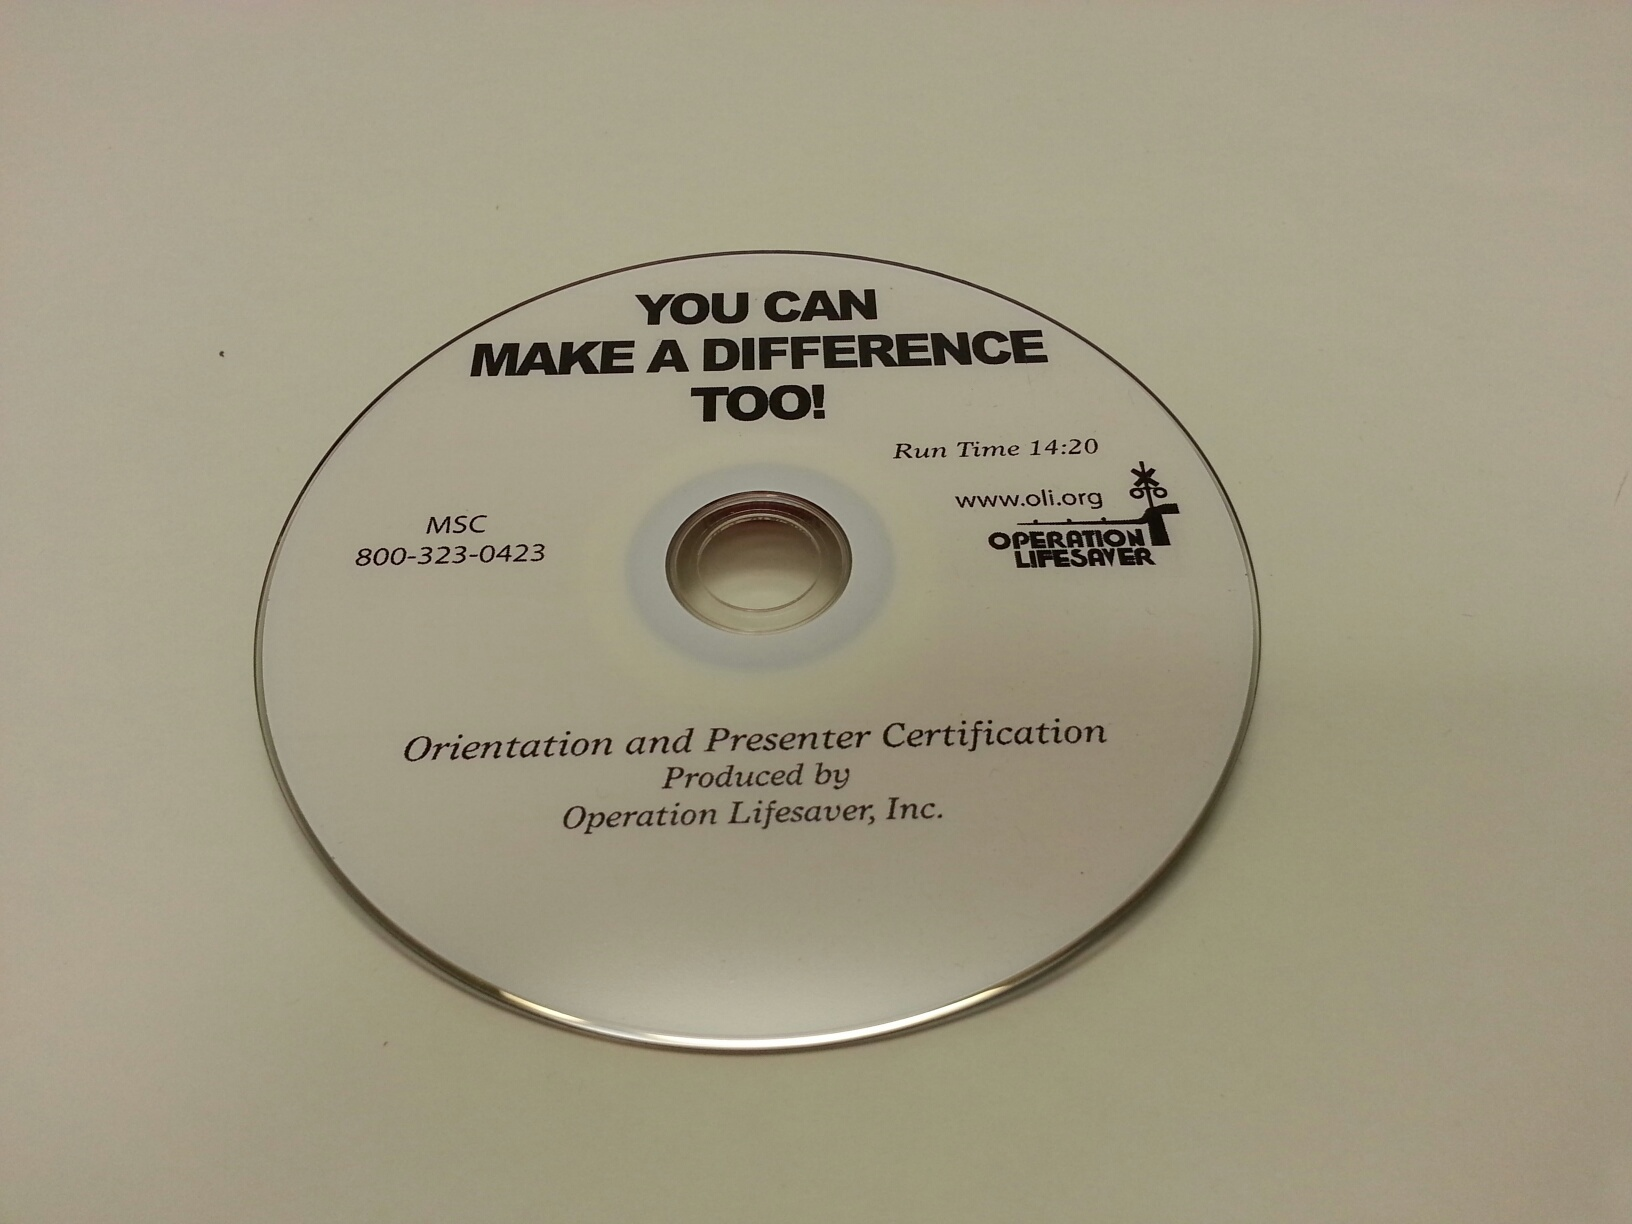 DVD - You Can Make a Difference Too!